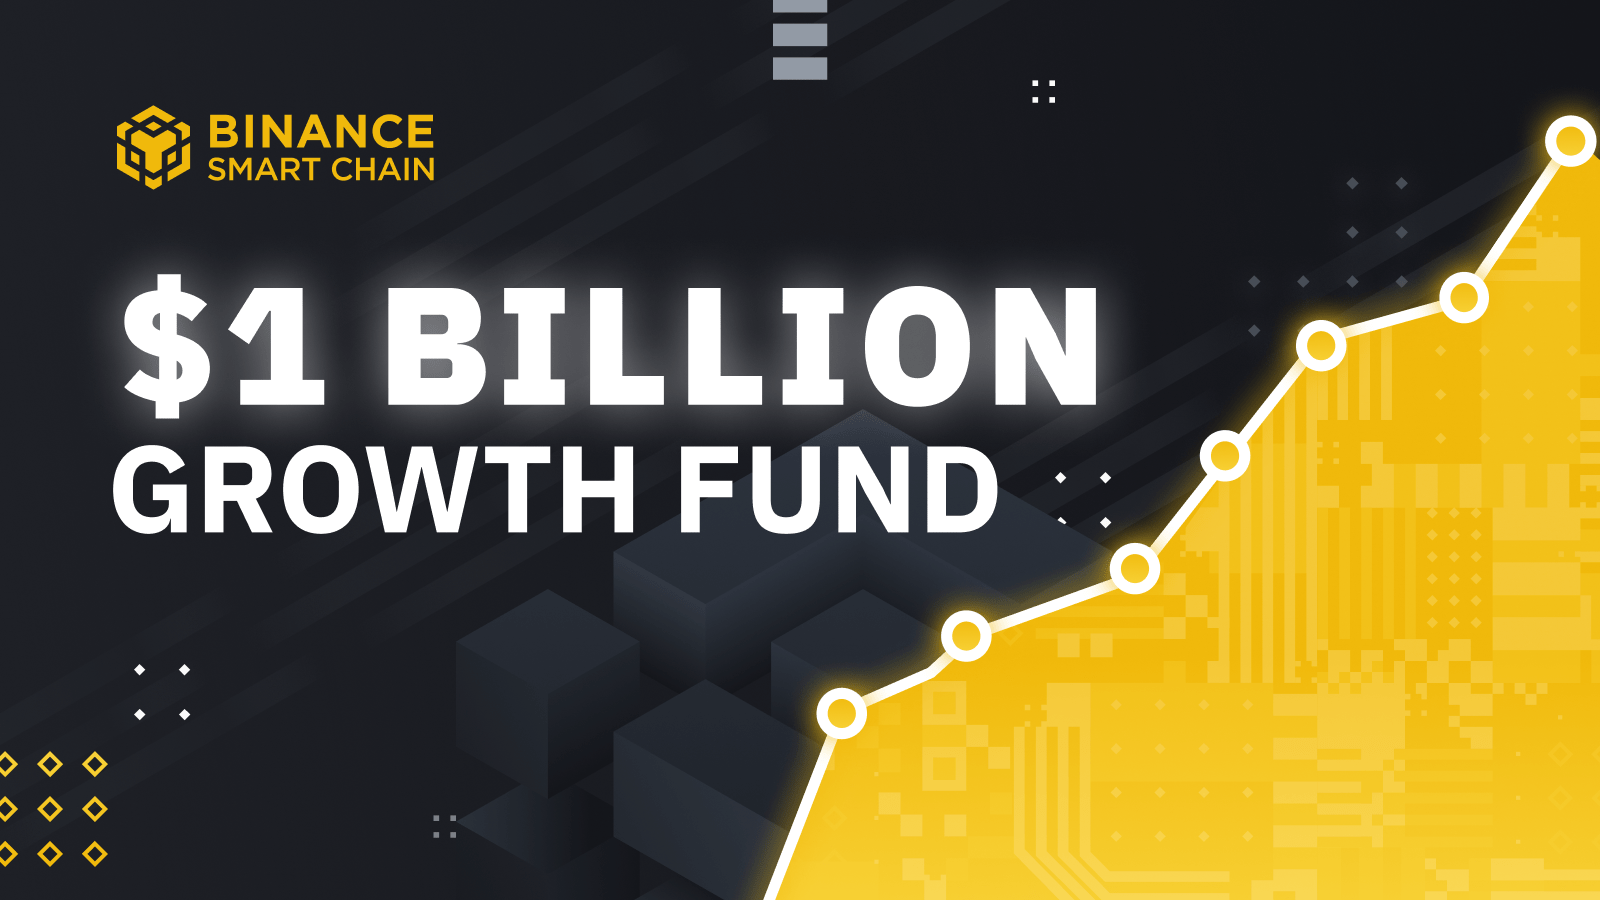 Binance Launches $1 Billion Fund to Drive Smart Chain Adoption and Its Entire Blockchain Industry